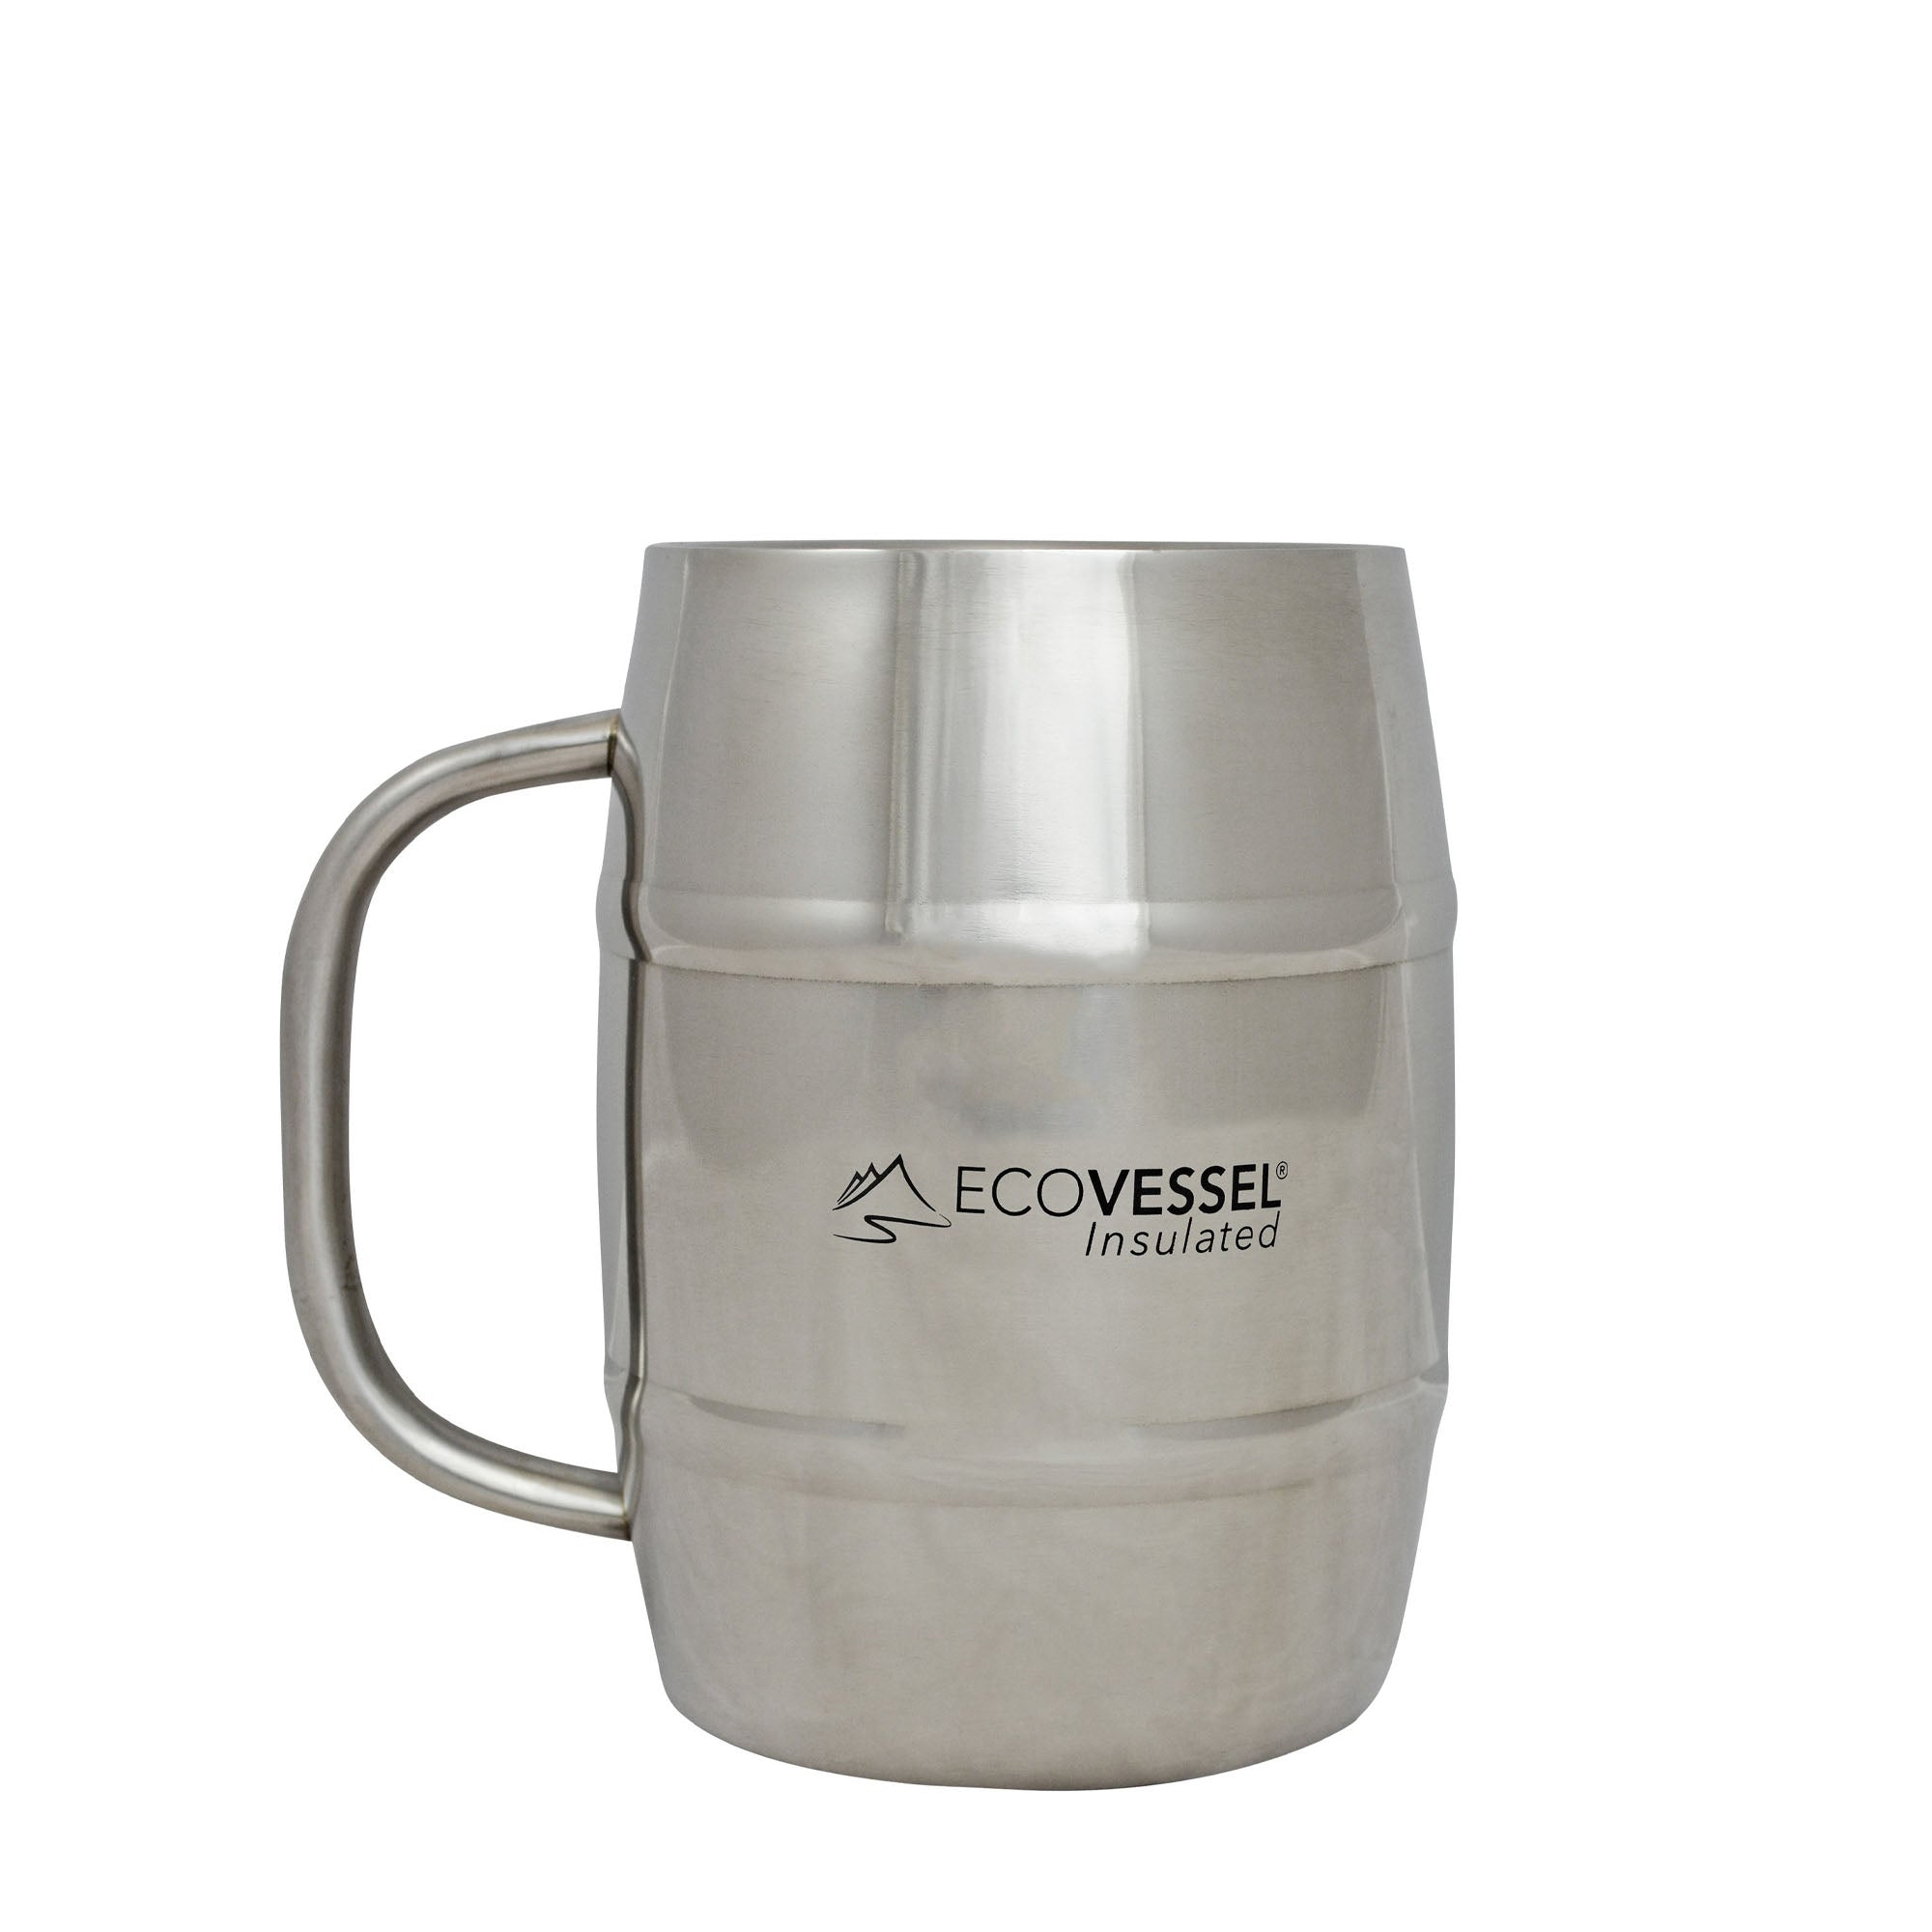 DOUBLE TROUBLE Insulated Beer / Coffee Mug - 32 oz - Silver Express with Gray Lid